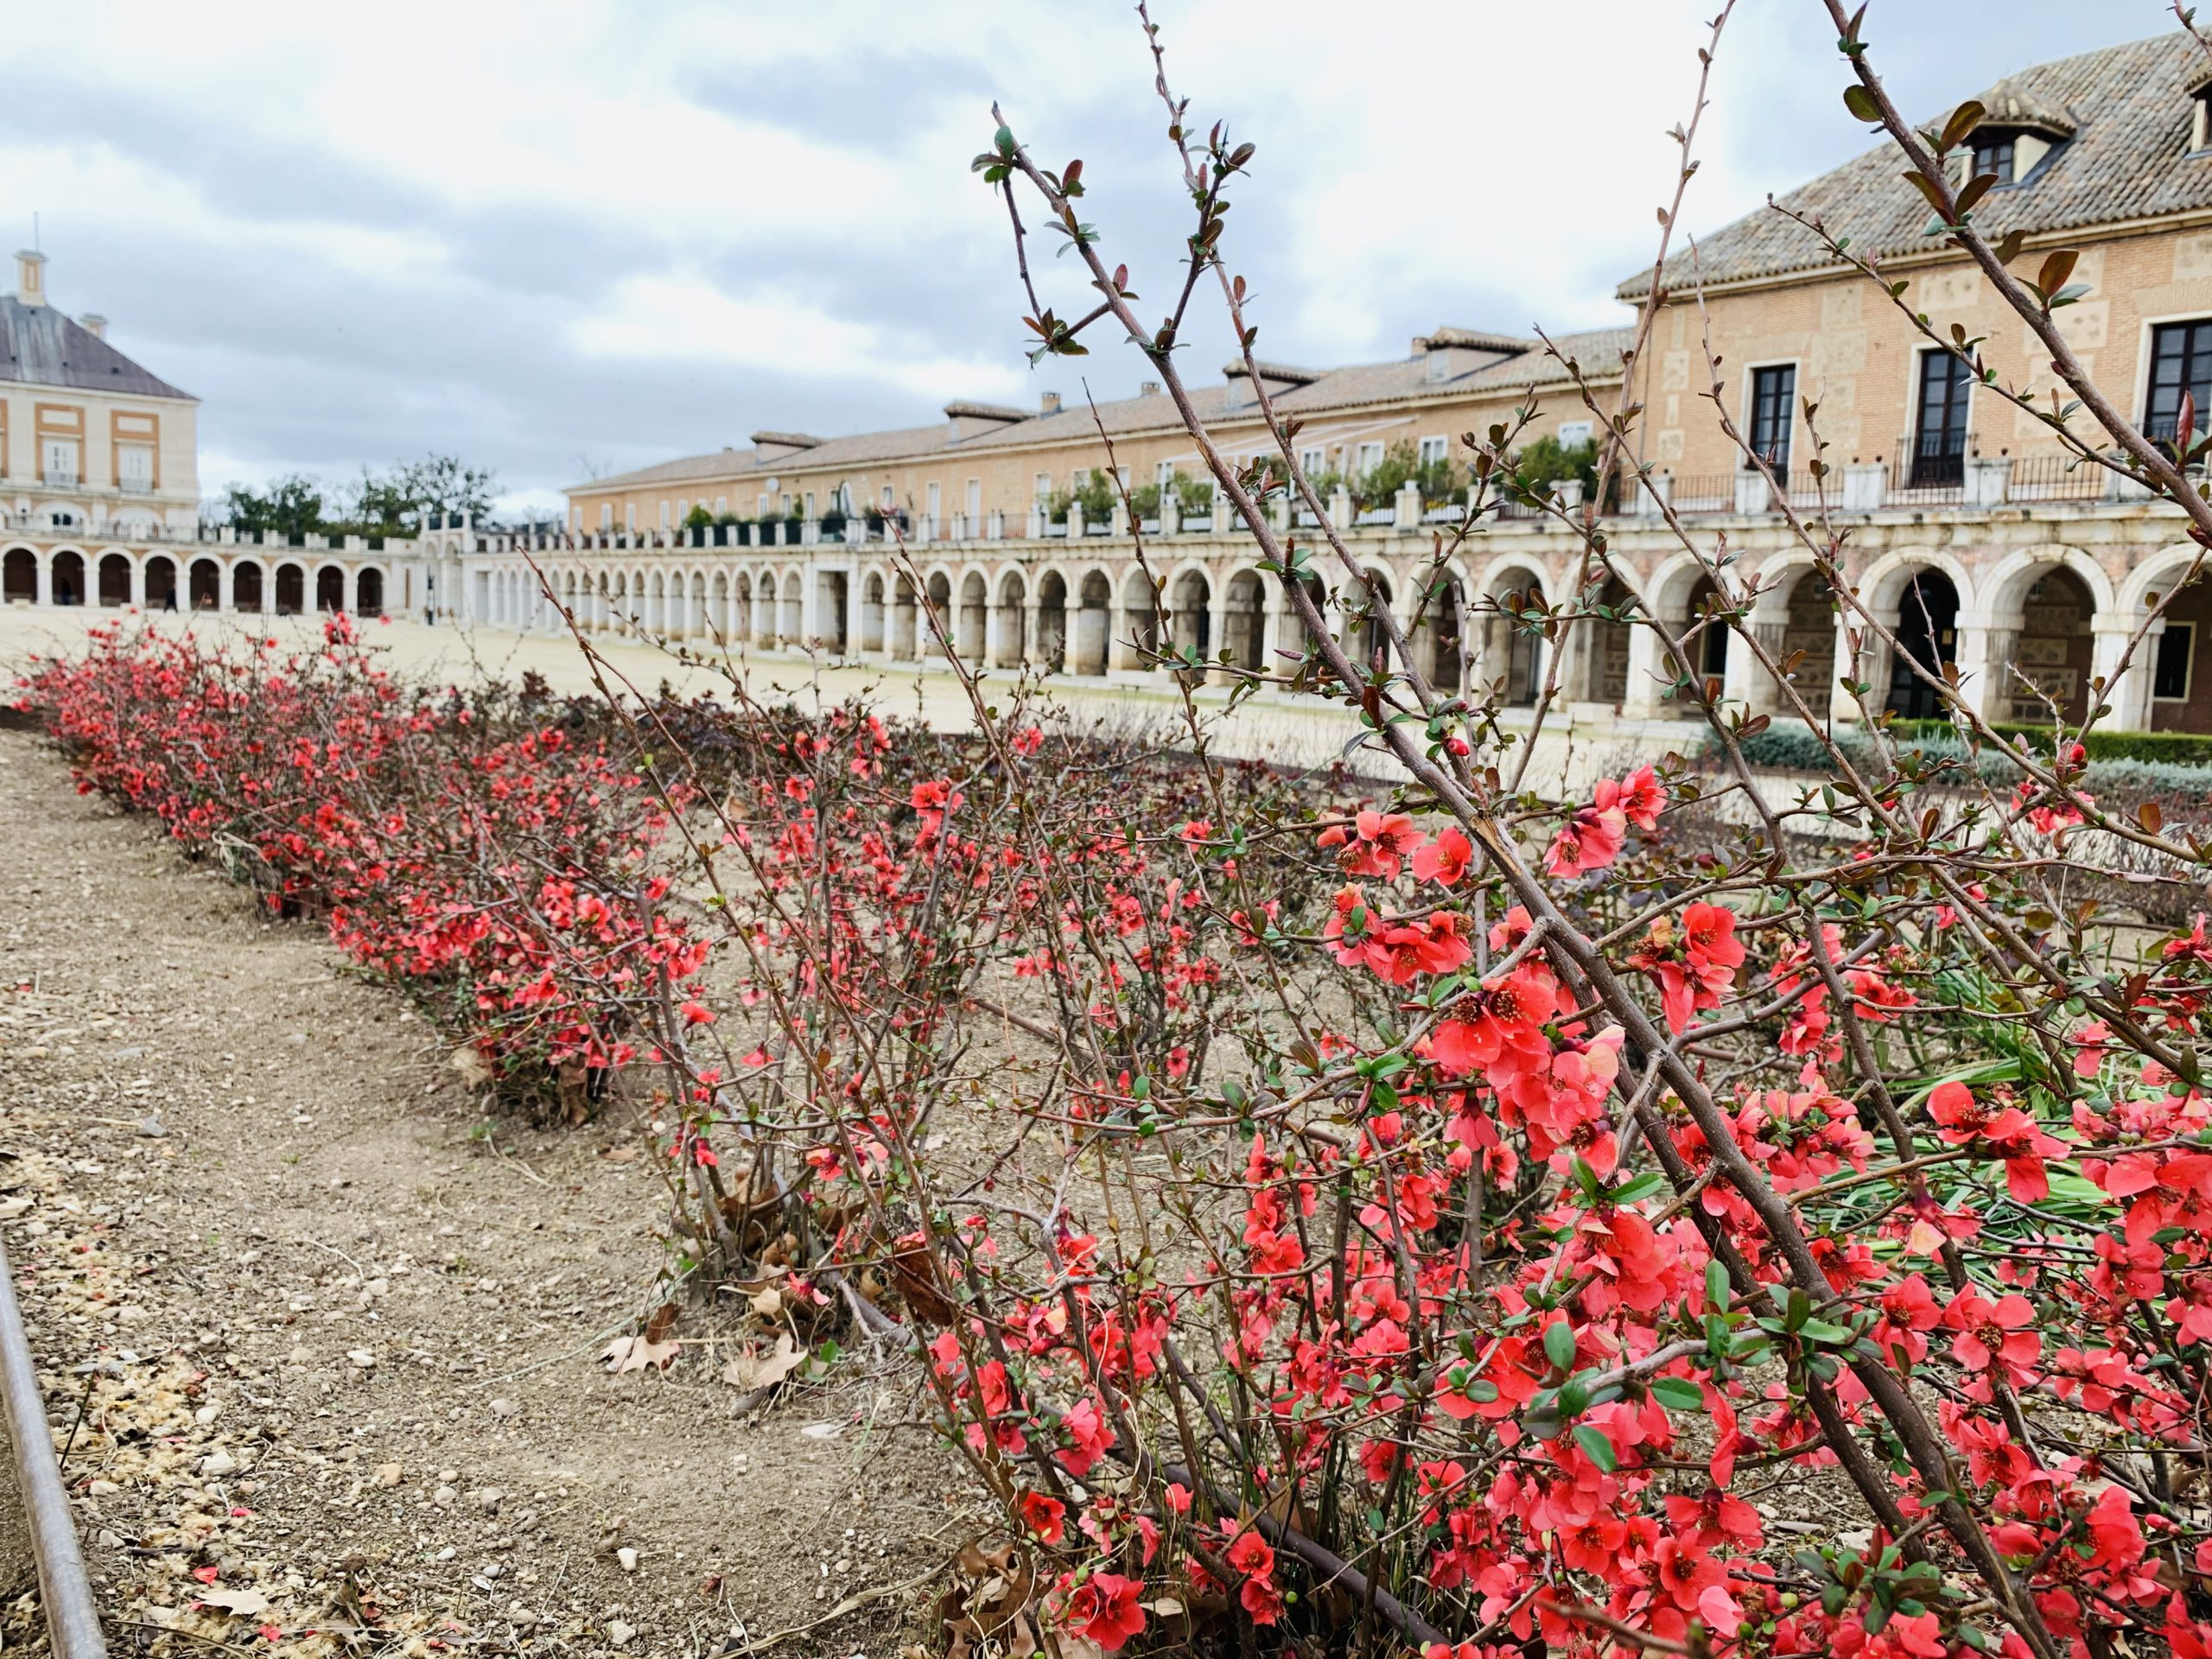 Flowers outside the Palace in Aranjuez